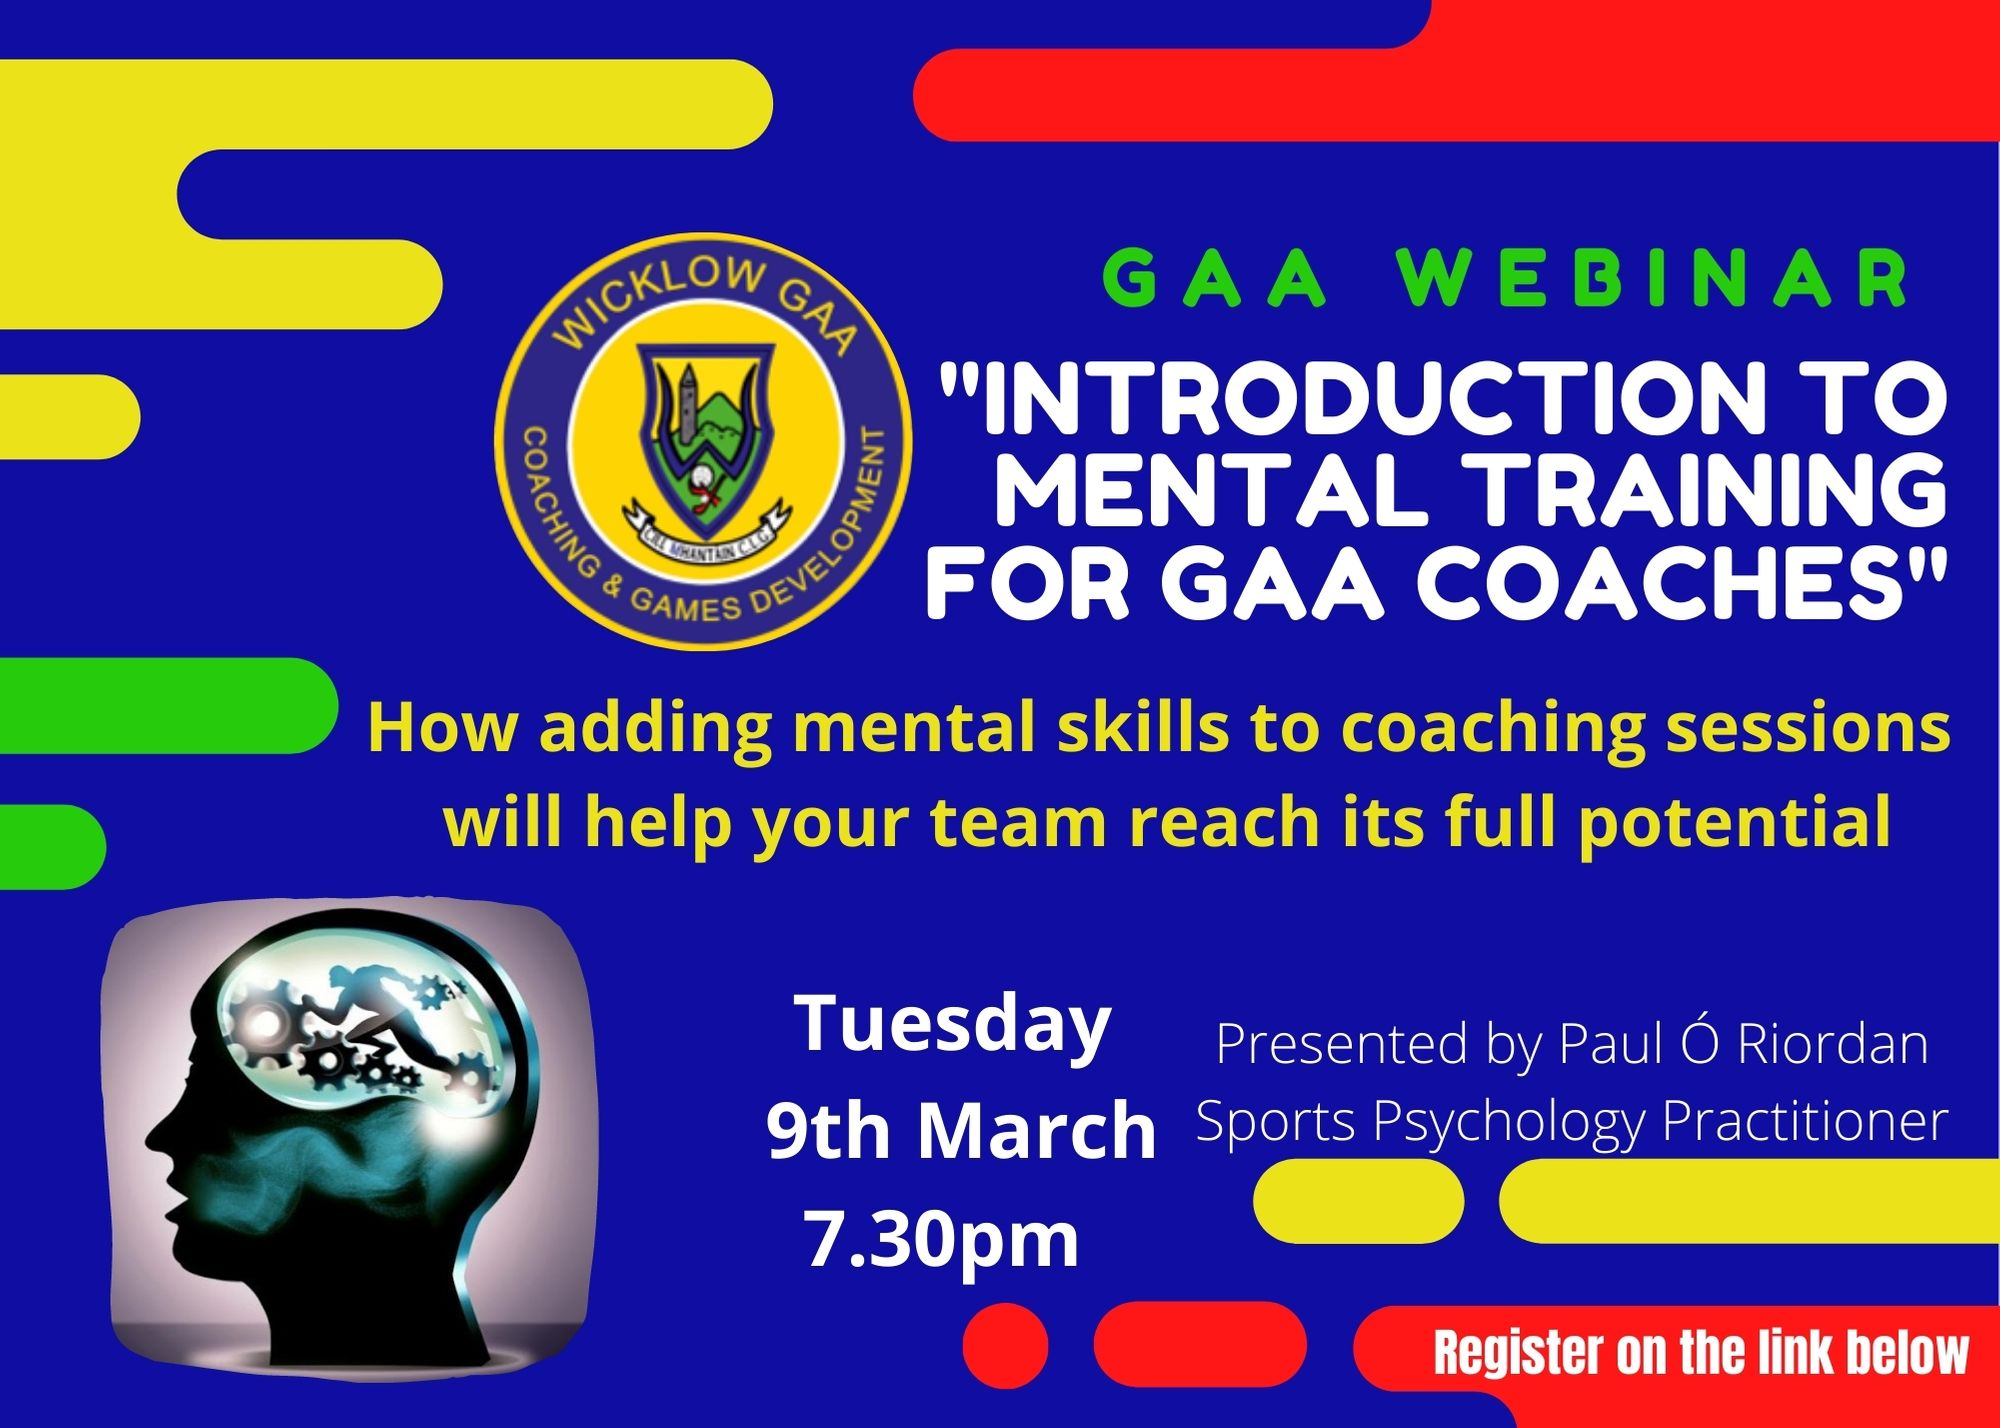 Introduction to Mental Training for GAA Coaches